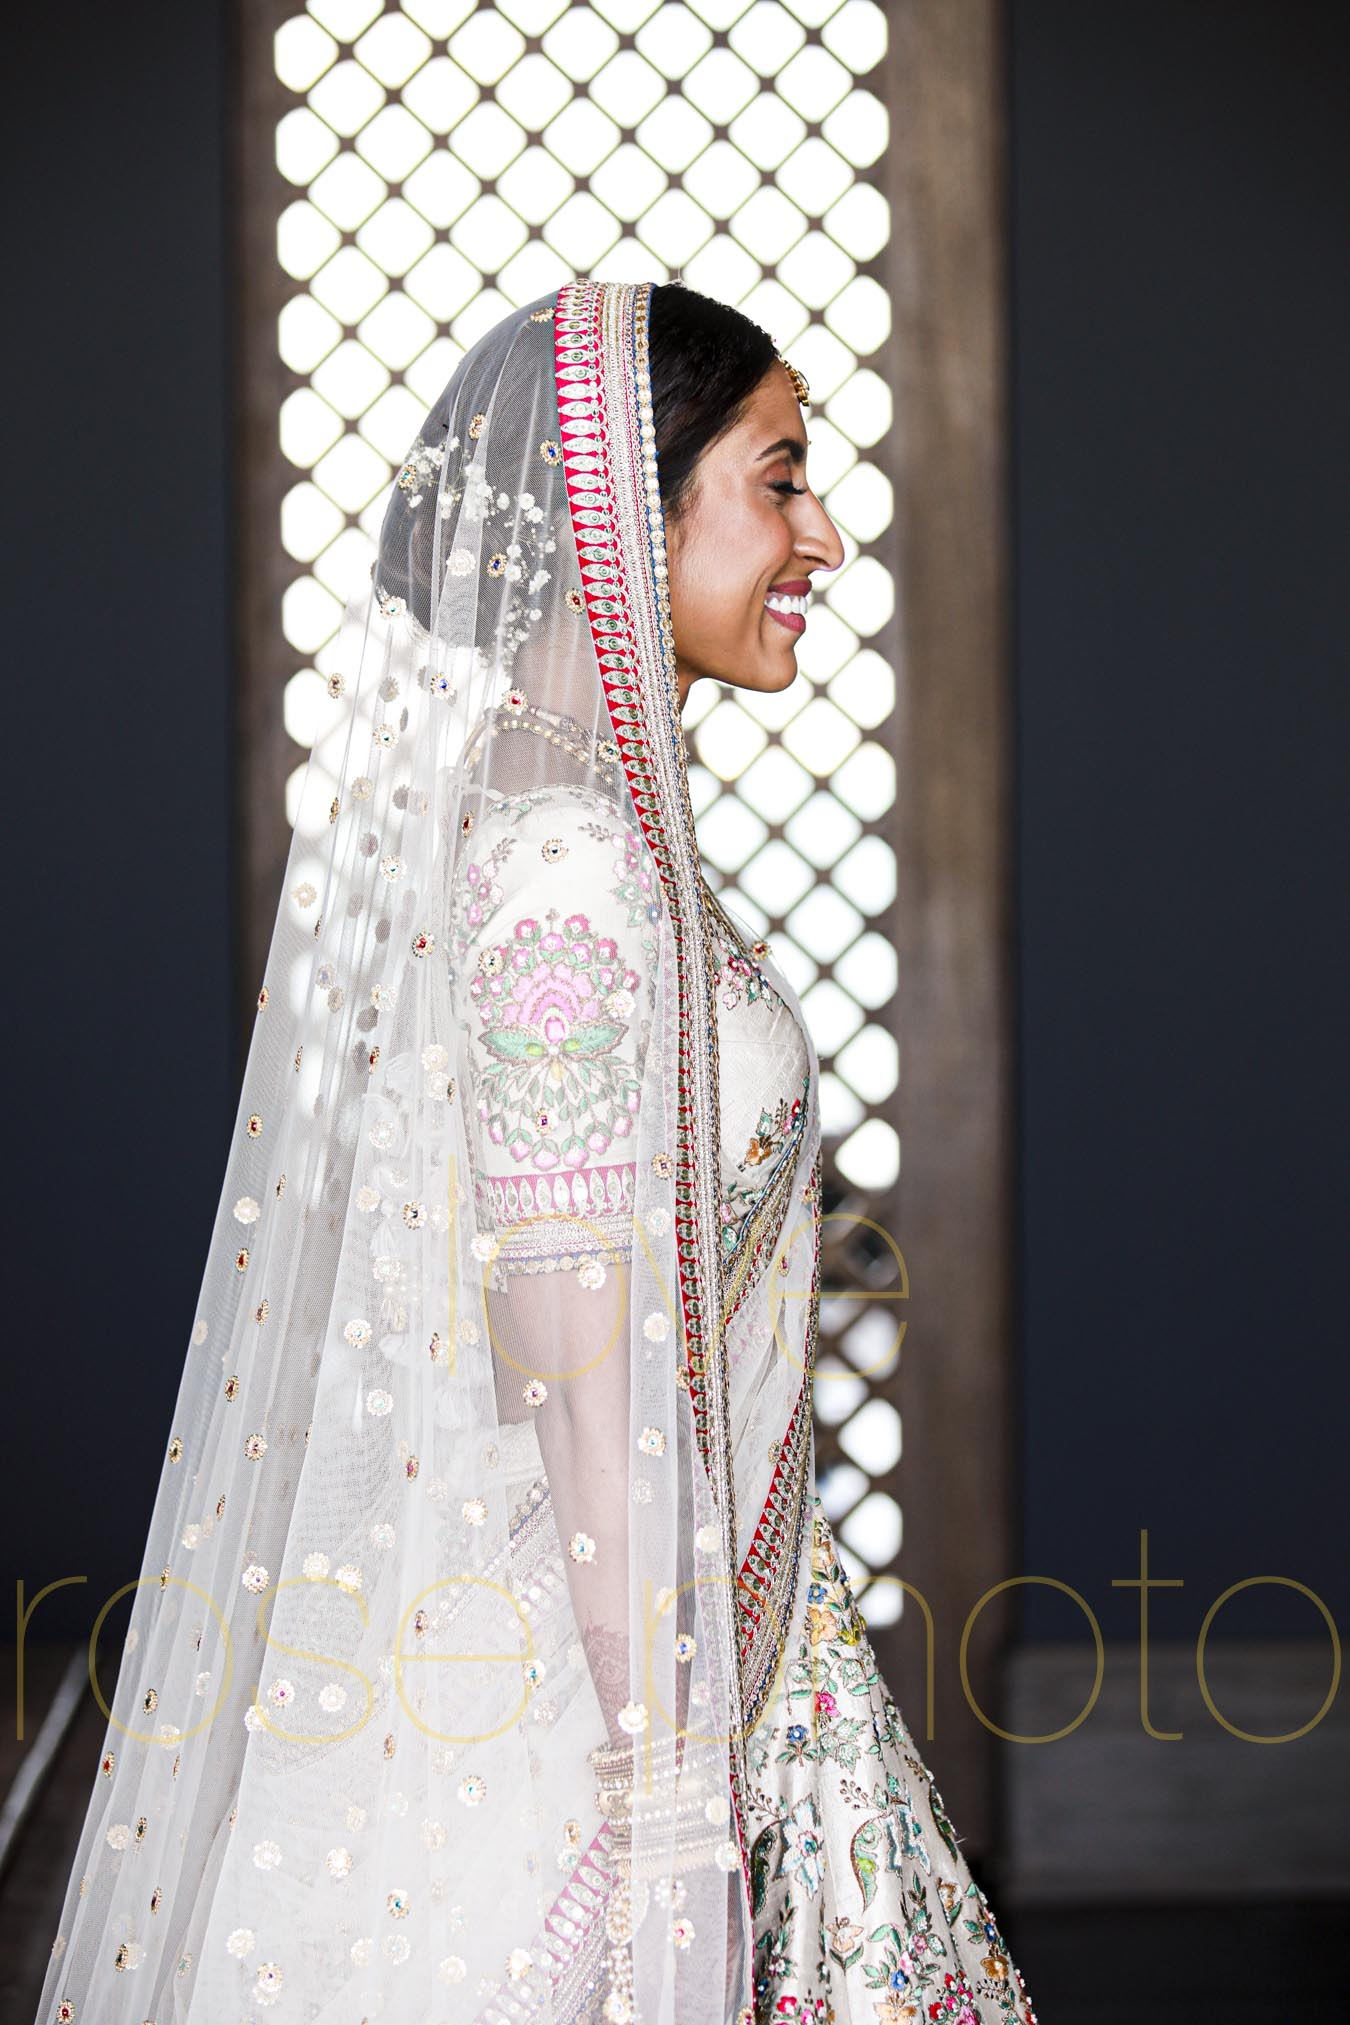 destination wedding photographer best of indian wed chicago asheville photographer-4213.jpg